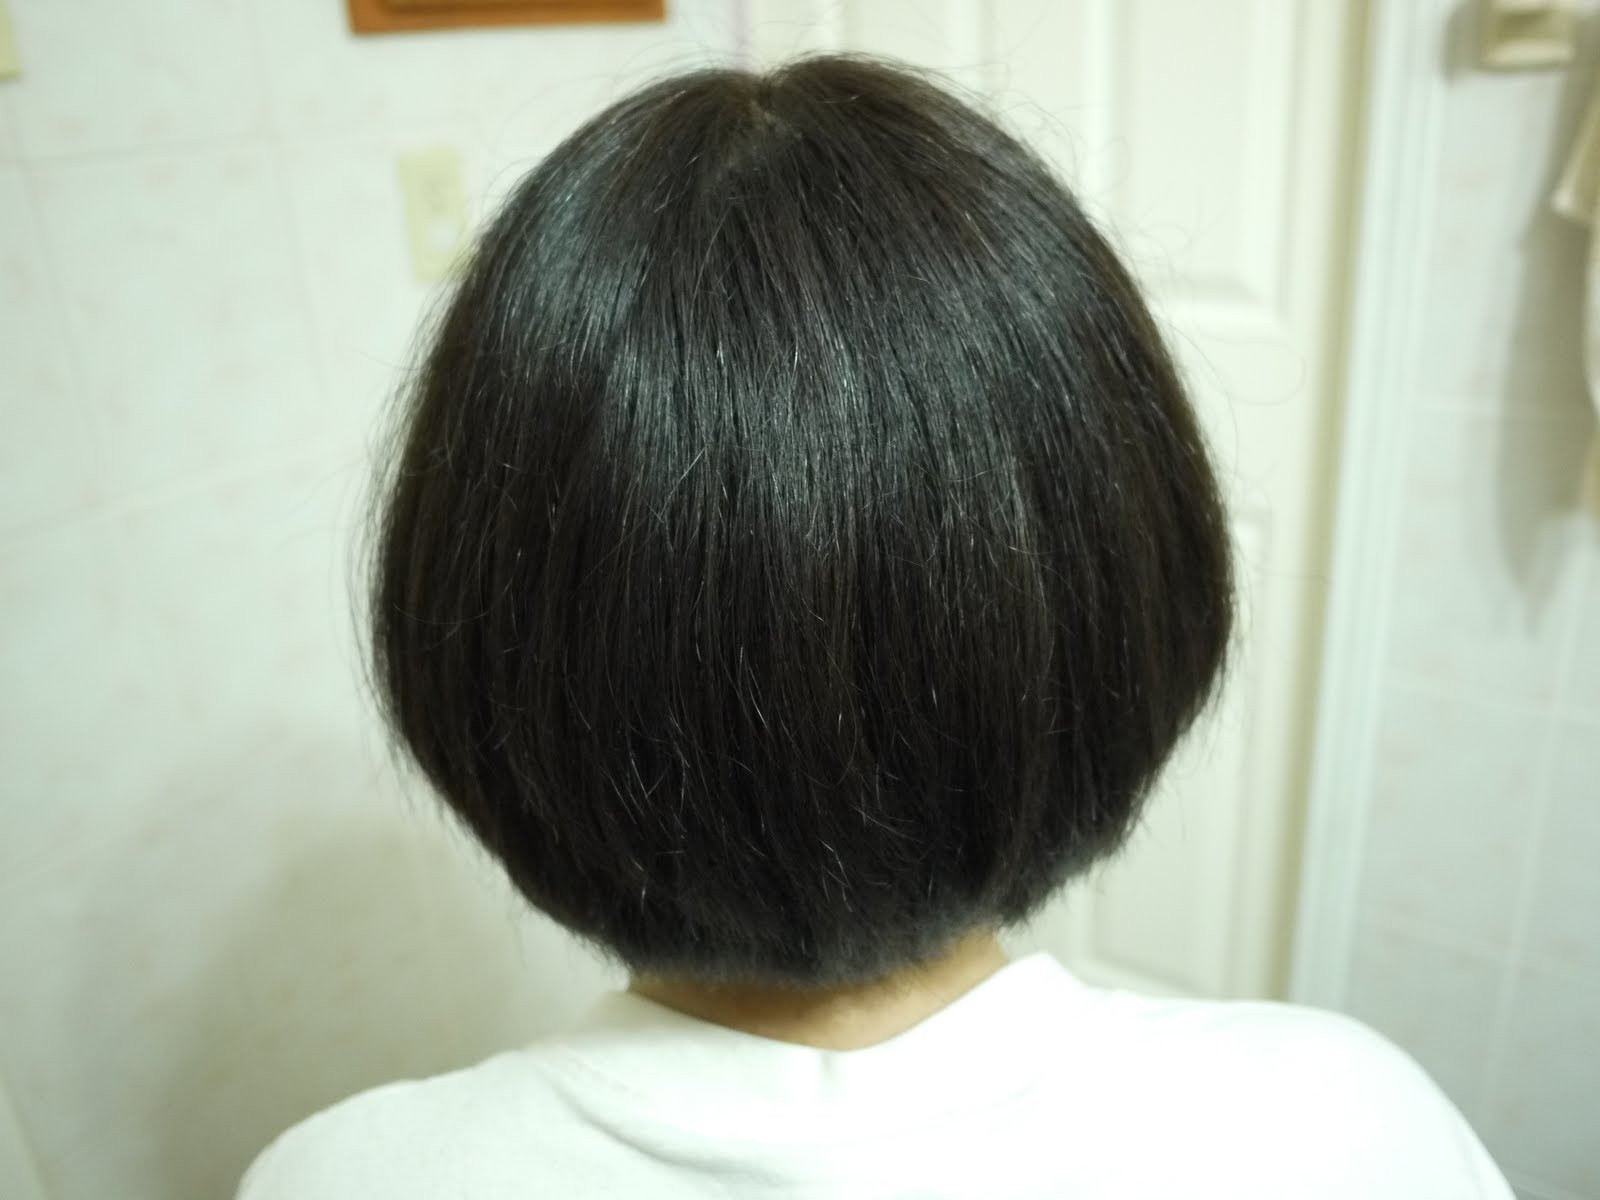 Best ideas about DIY Bob Haircut . Save or Pin Our take on DIY bob haircut Now.